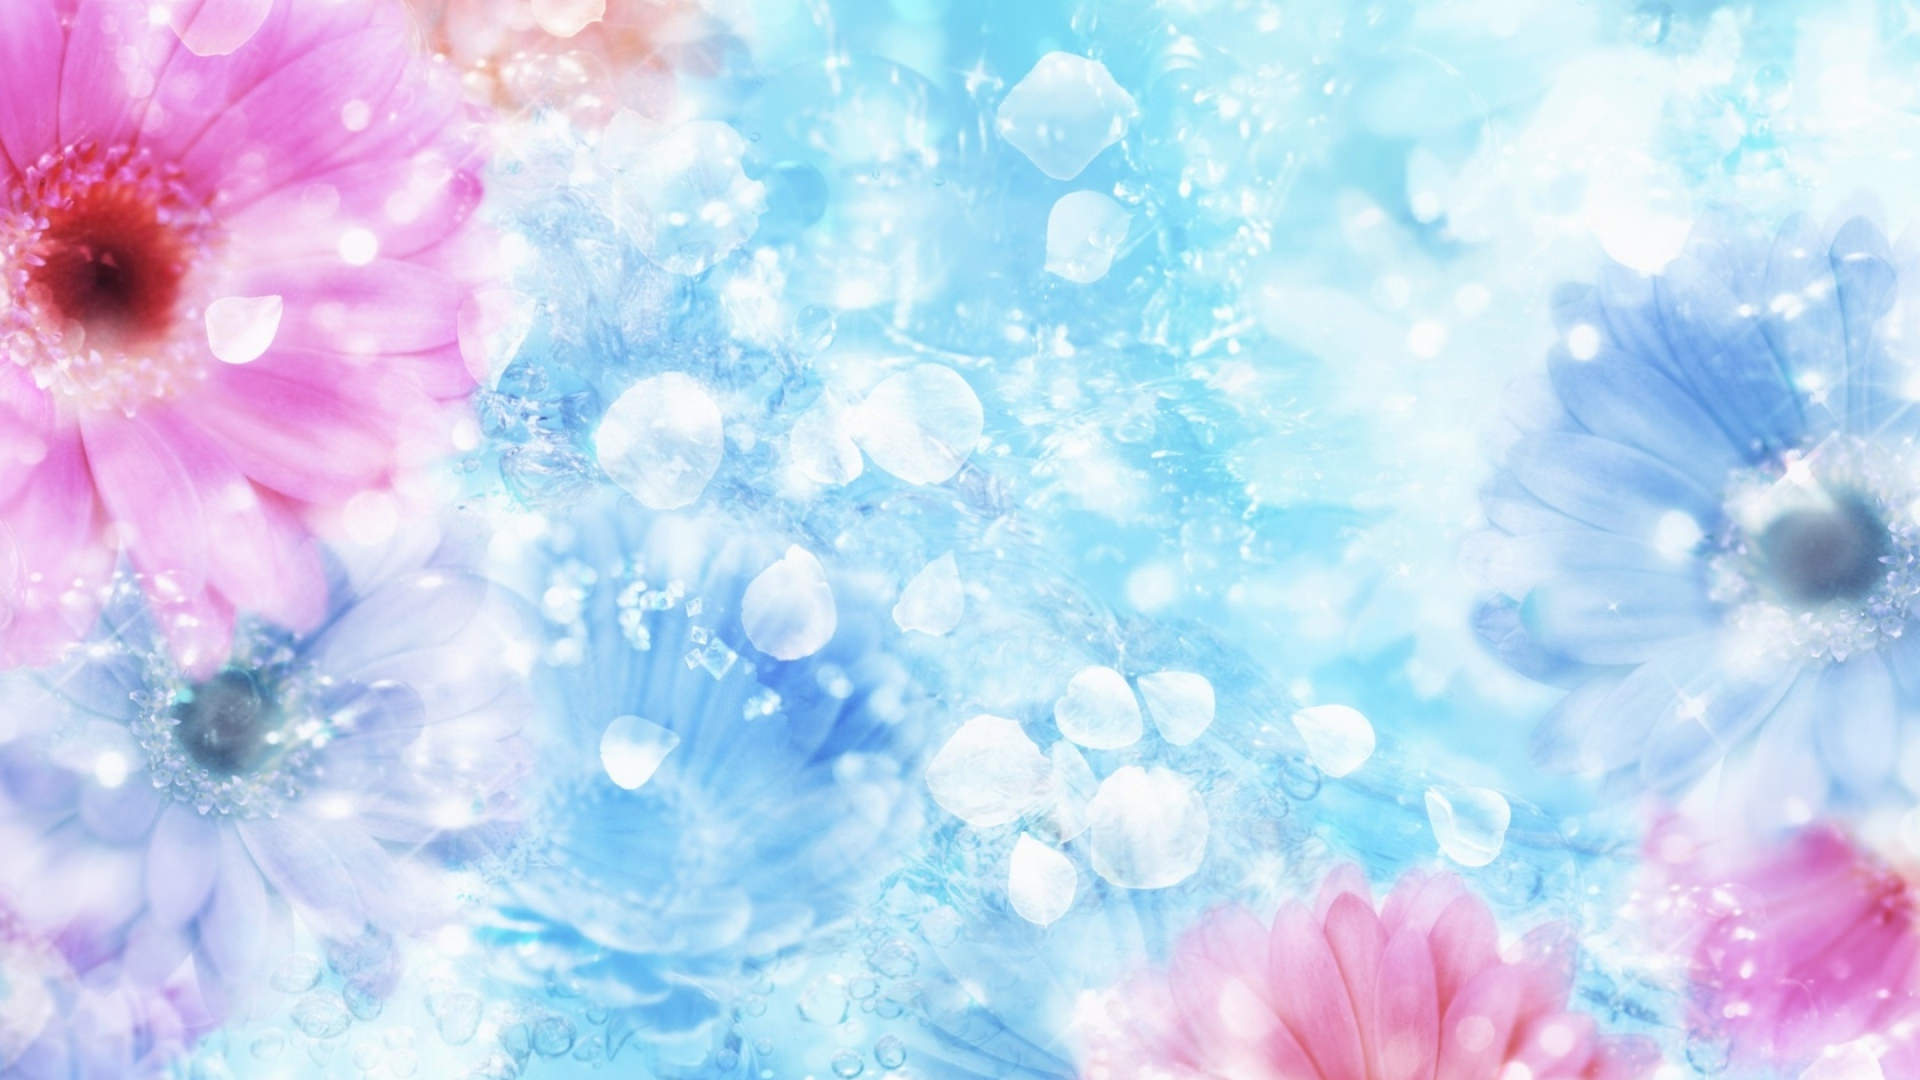 Free Colorful Flower Desktop Wallpaper: 29+ Bright Backgrounds, Wallpapers, Images